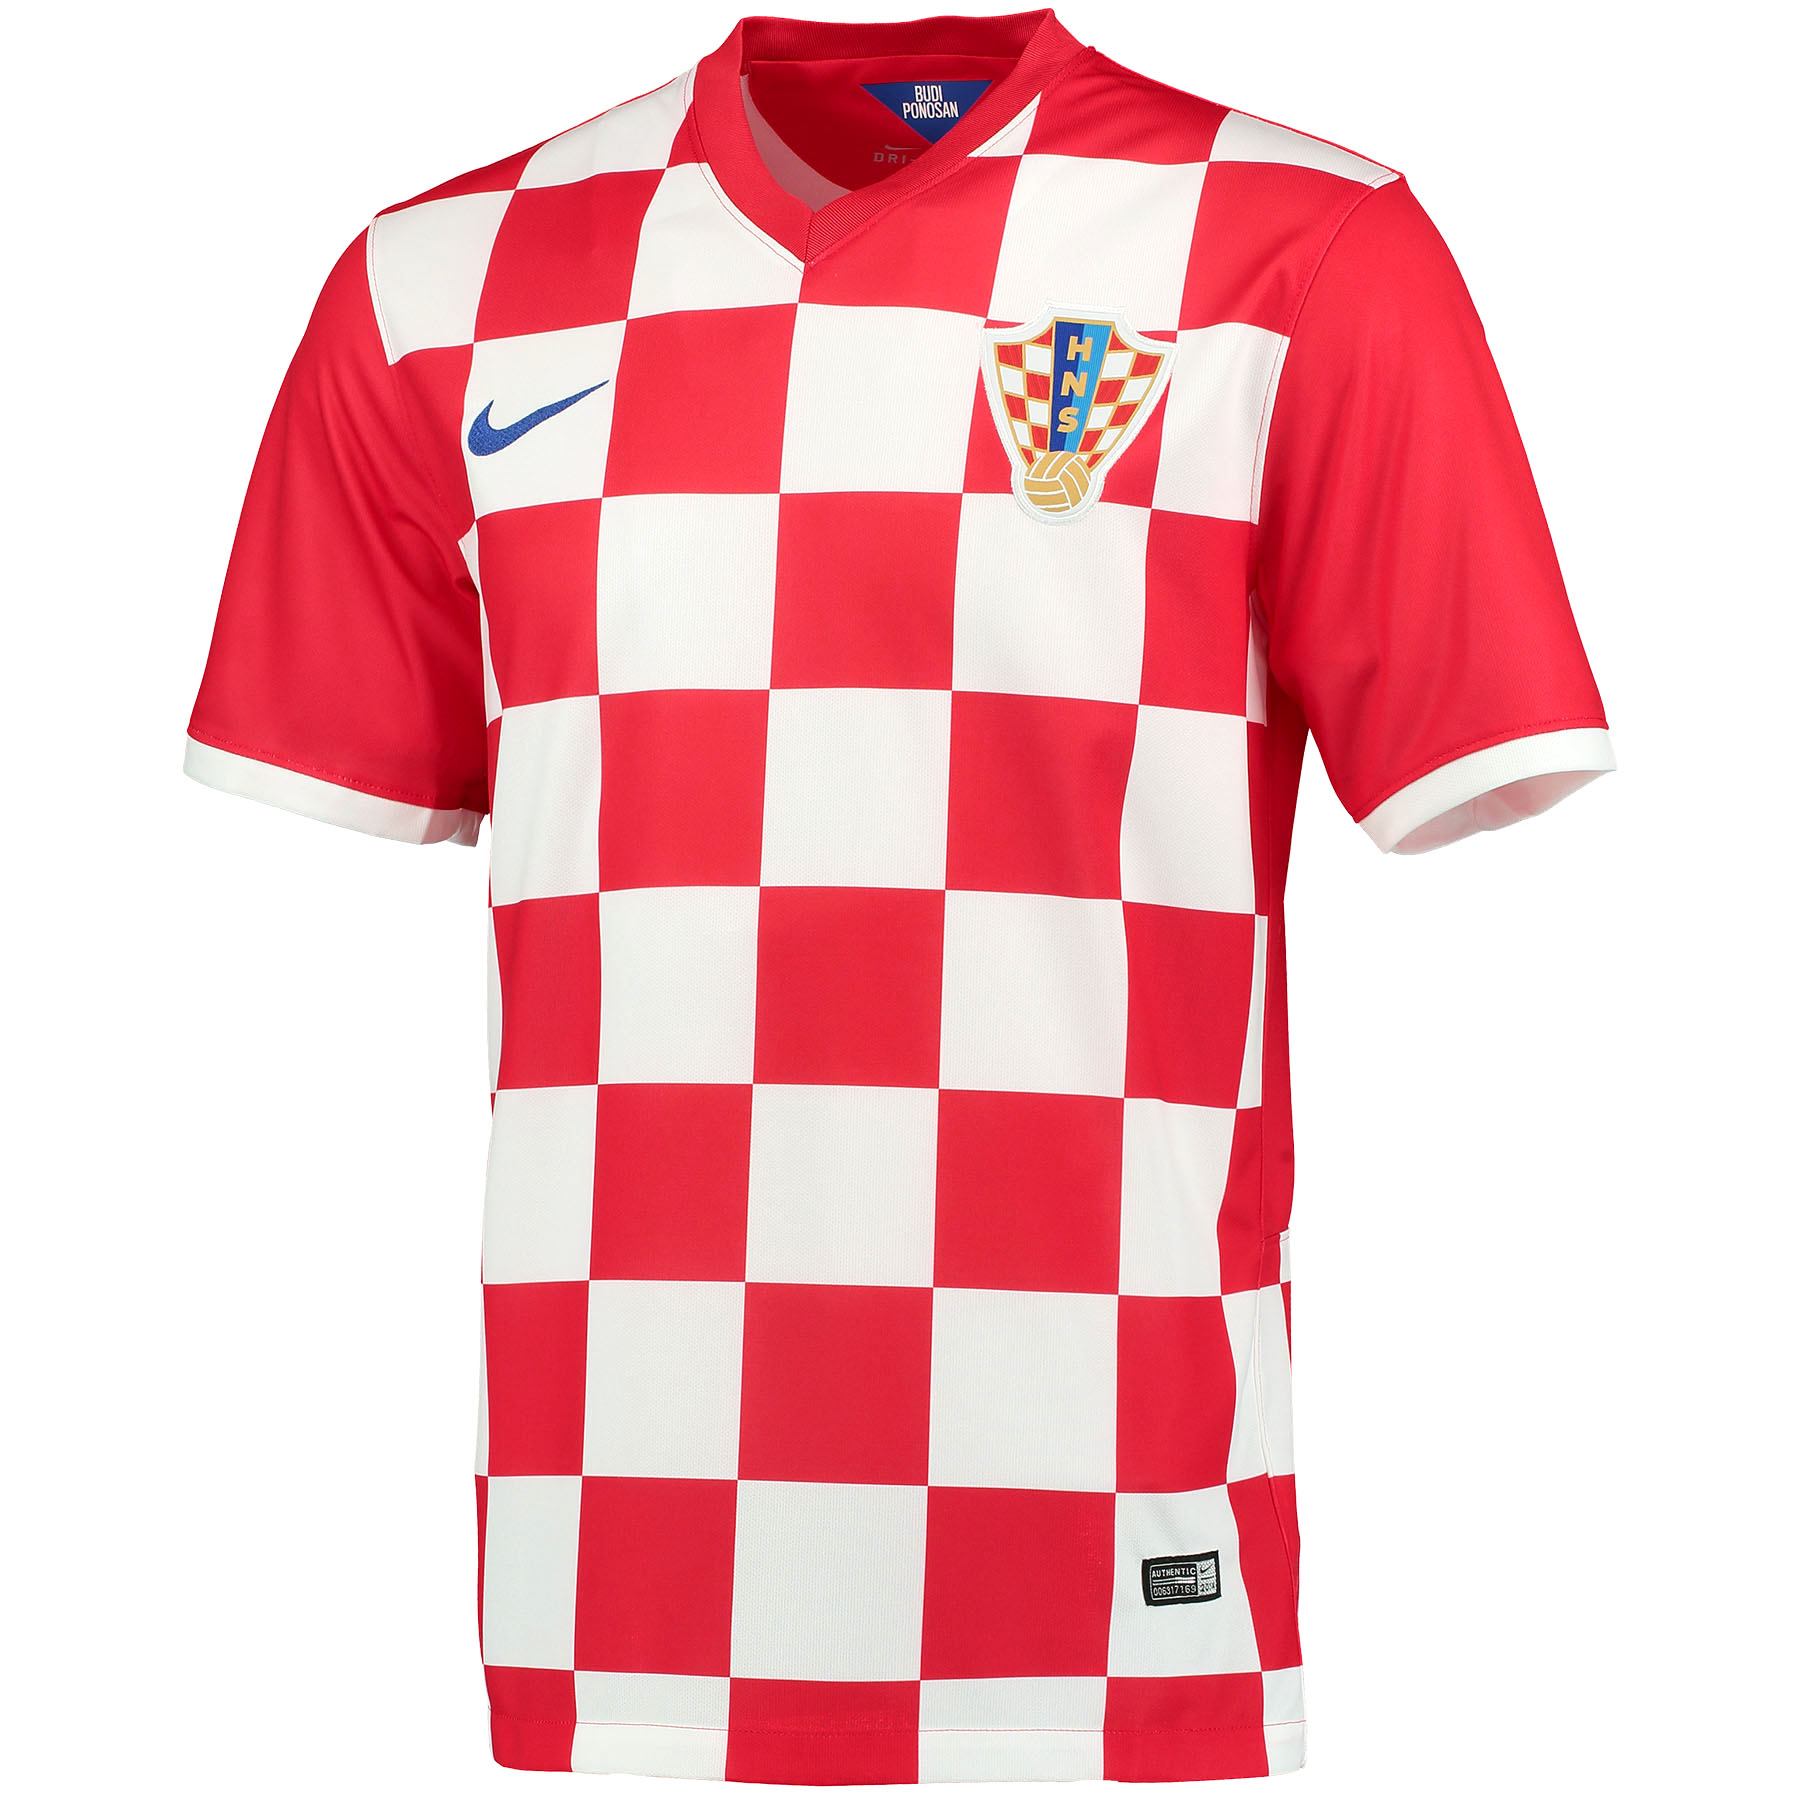 Croatia Home Shirt 2014/15 Red